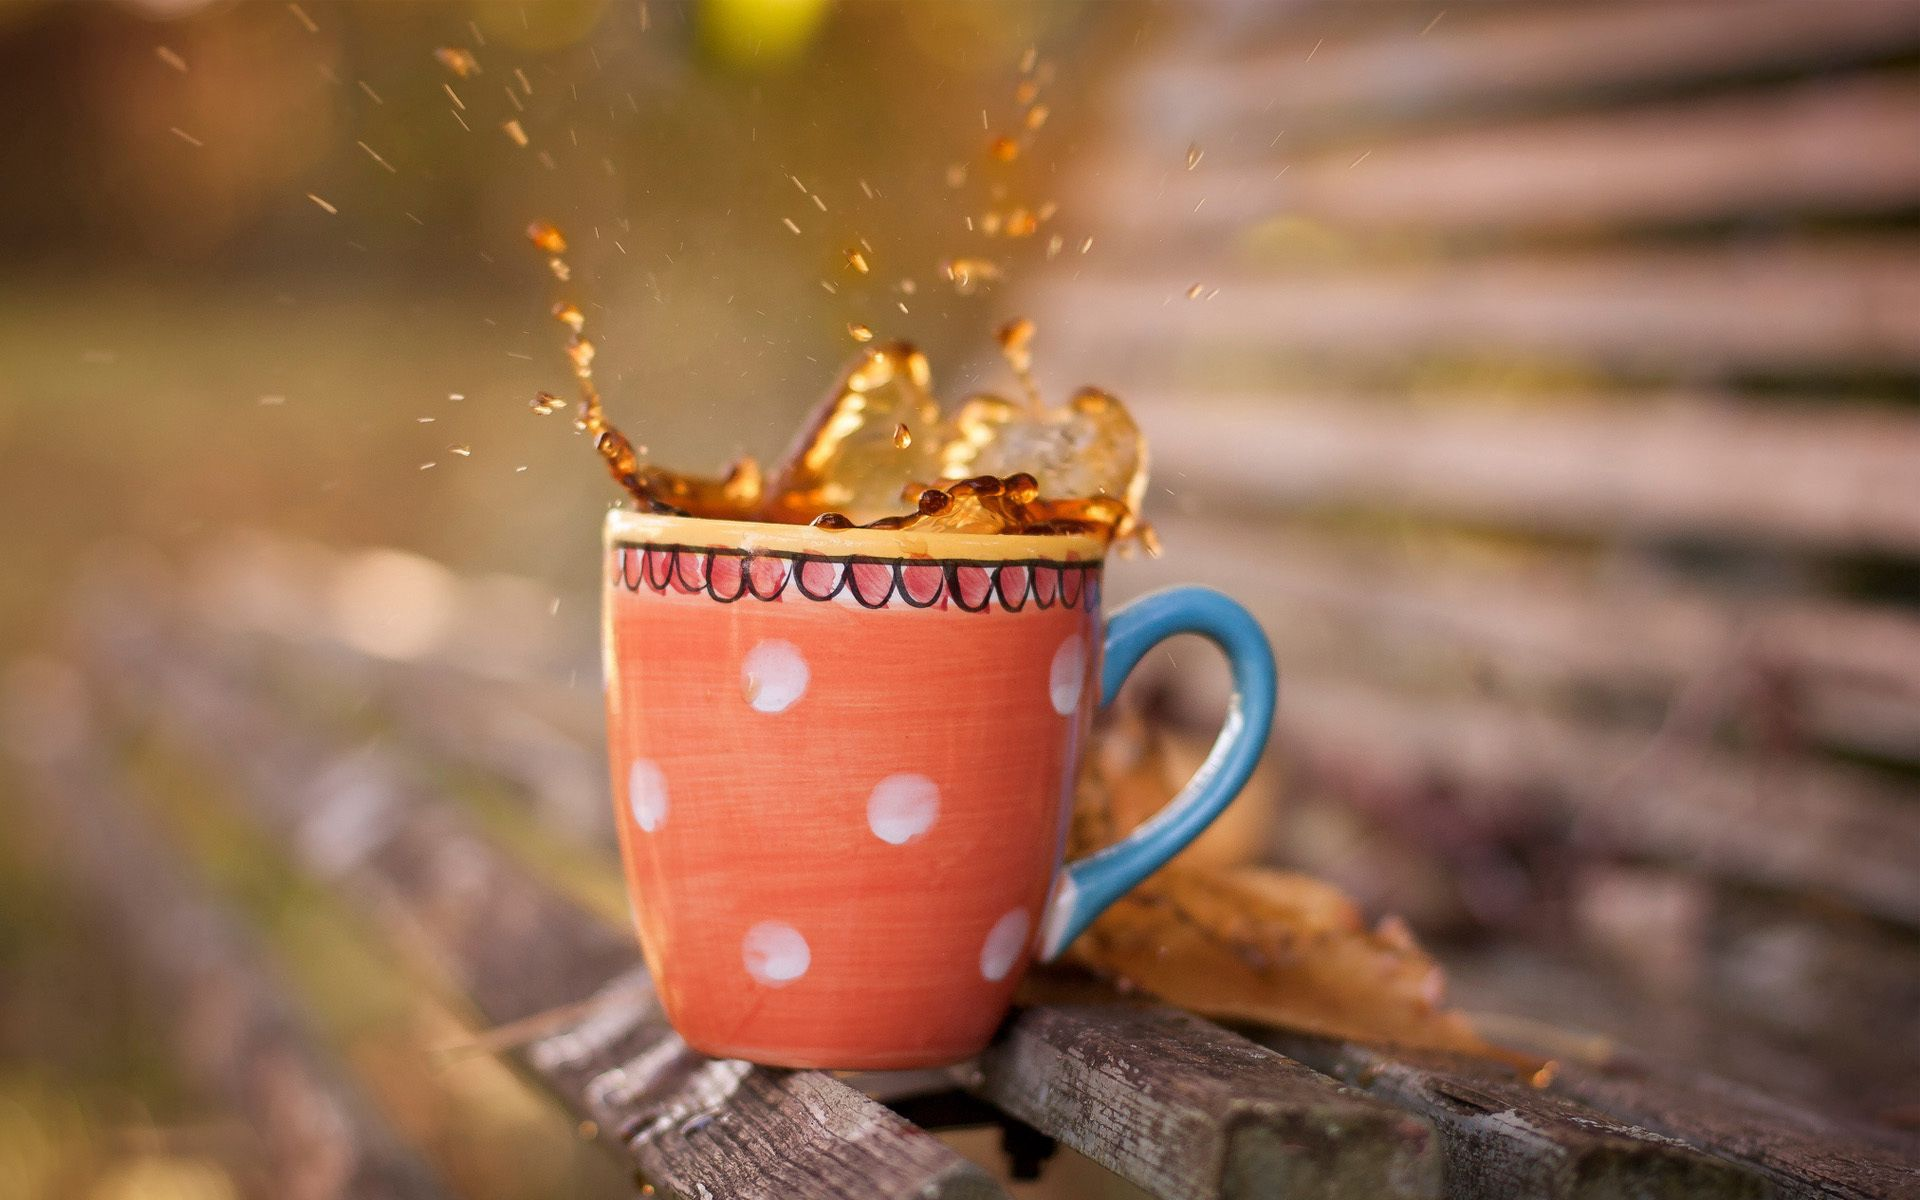 127871 download wallpaper Food, Cup, Mug, Tea, Spray, Drops, Planks, Board, Bench screensavers and pictures for free